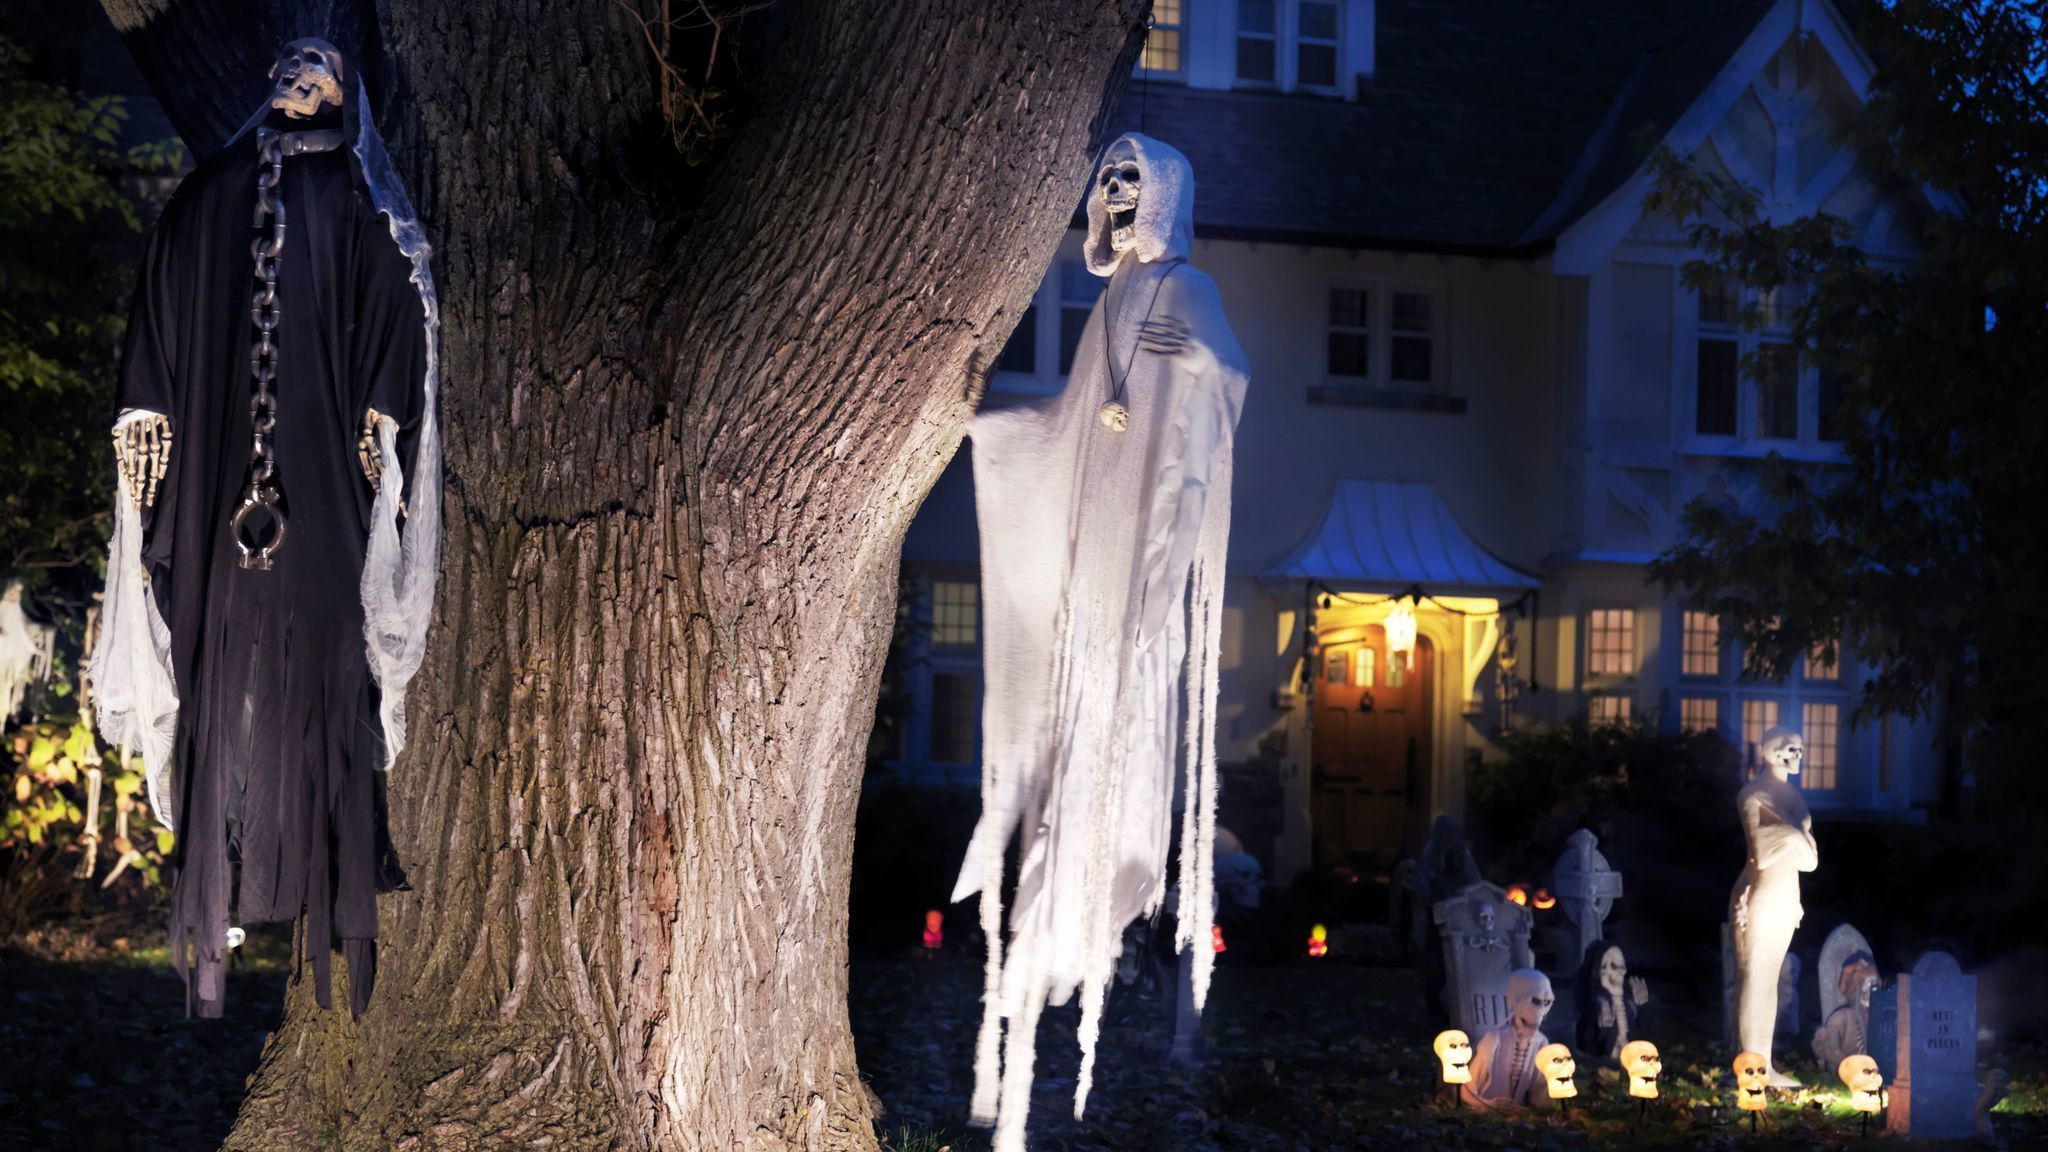 What to say if neighbors' Halloween decorations are too scary - Chicago  Tribune